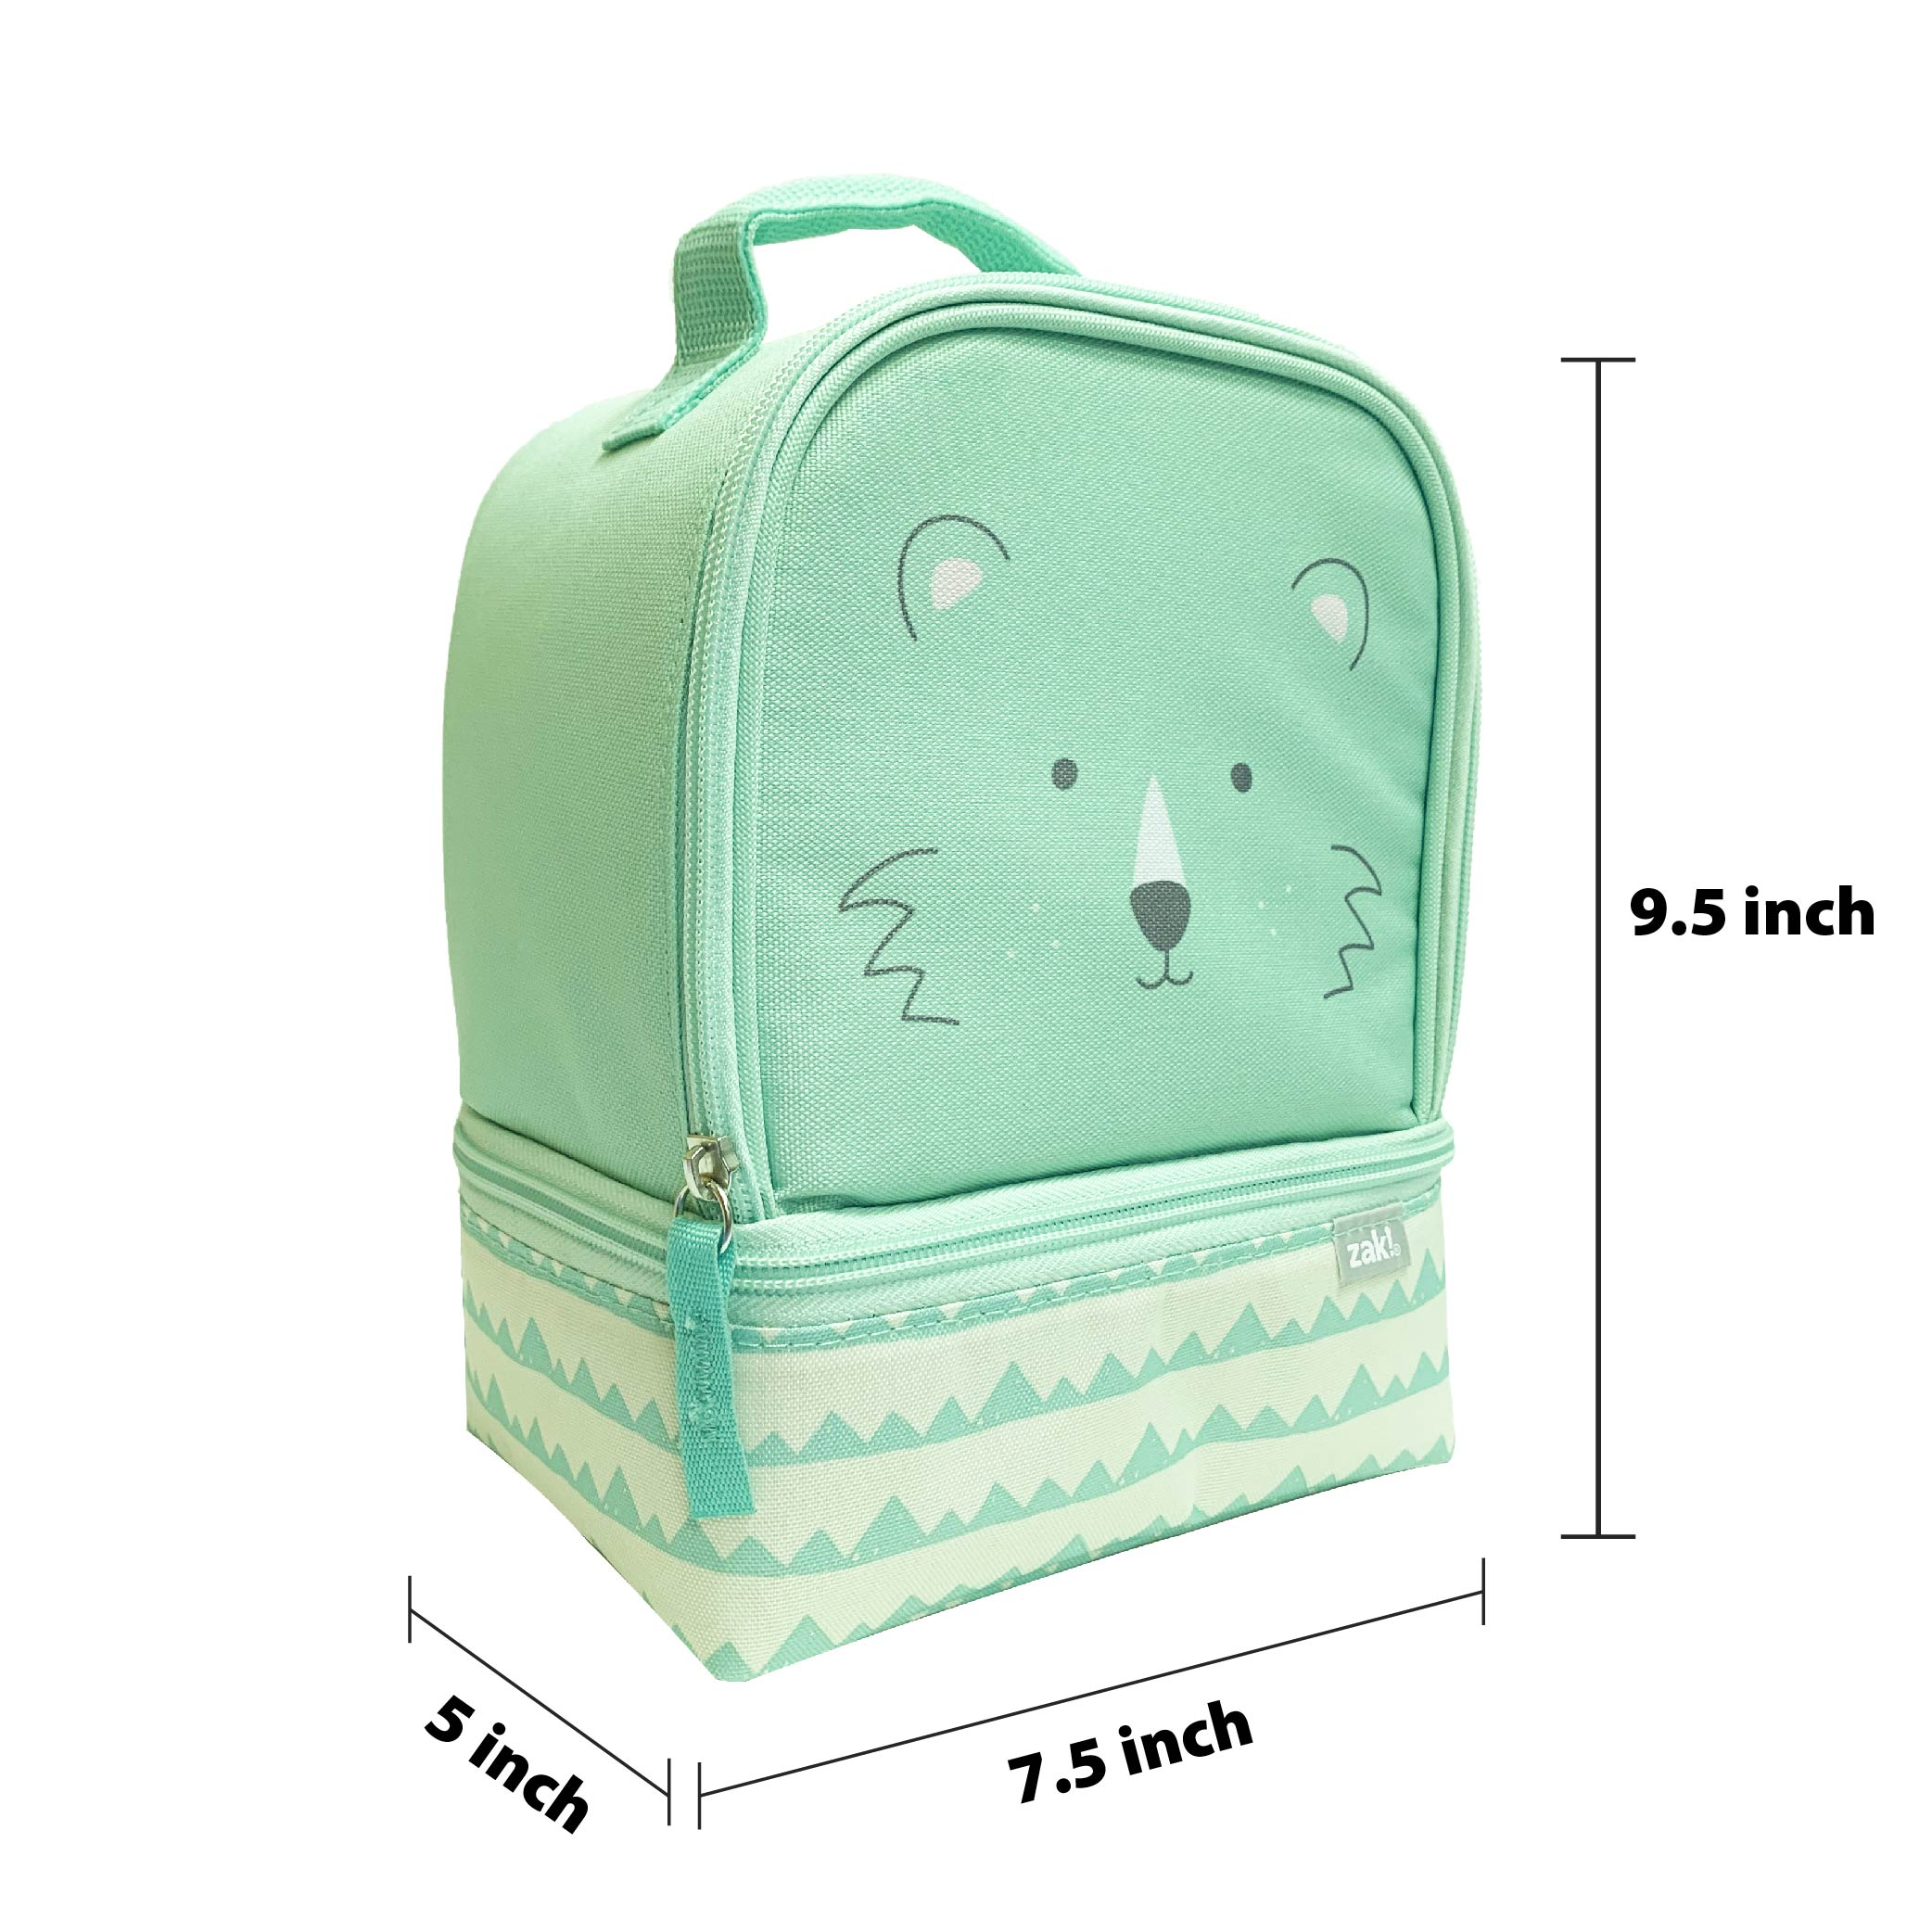 Soft Lines 2-compartment Reusable Insulated Lunch Bag, Teddy Bears slideshow image 5